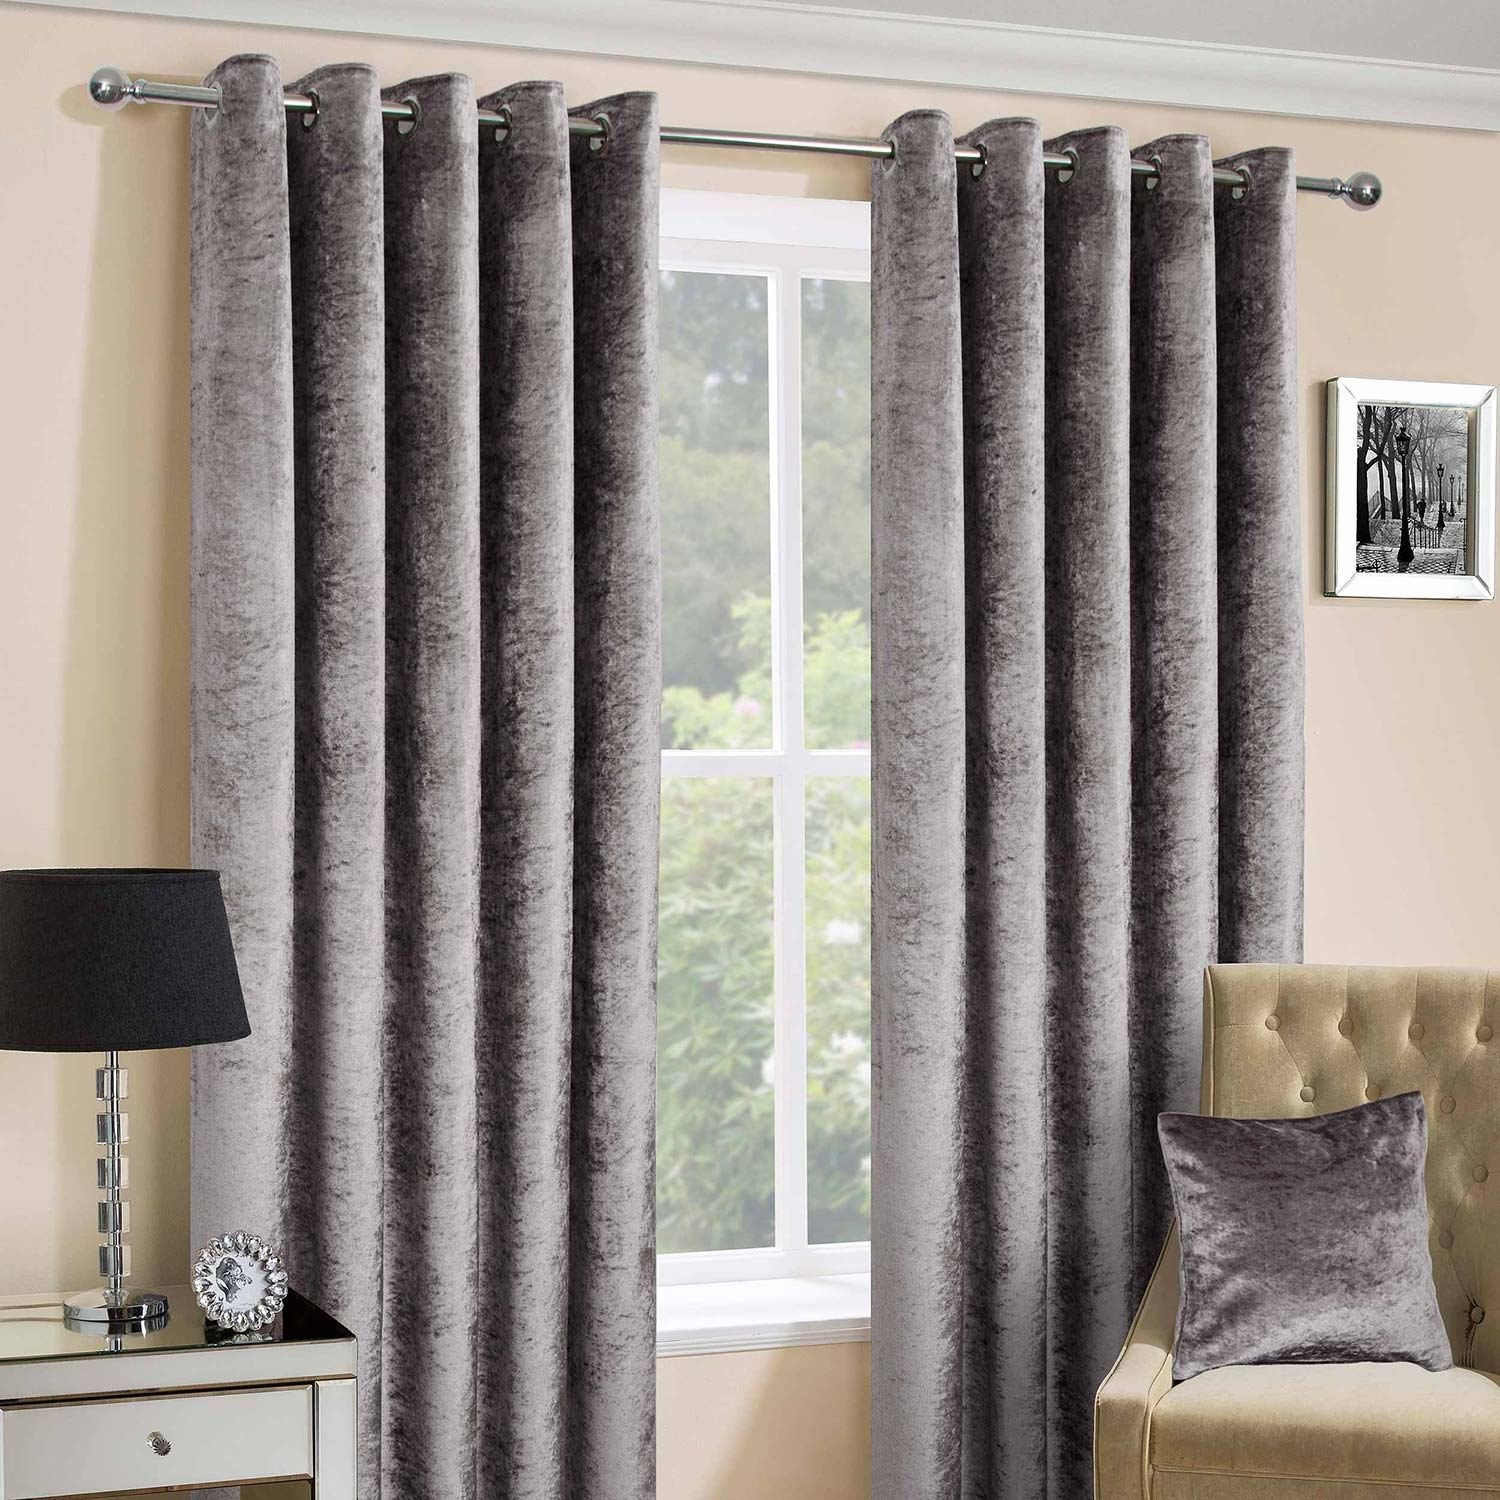 Homescapes Silver Crushed Velvet Lined Curtain Pair 90 X 72 Inch Drop 228 182